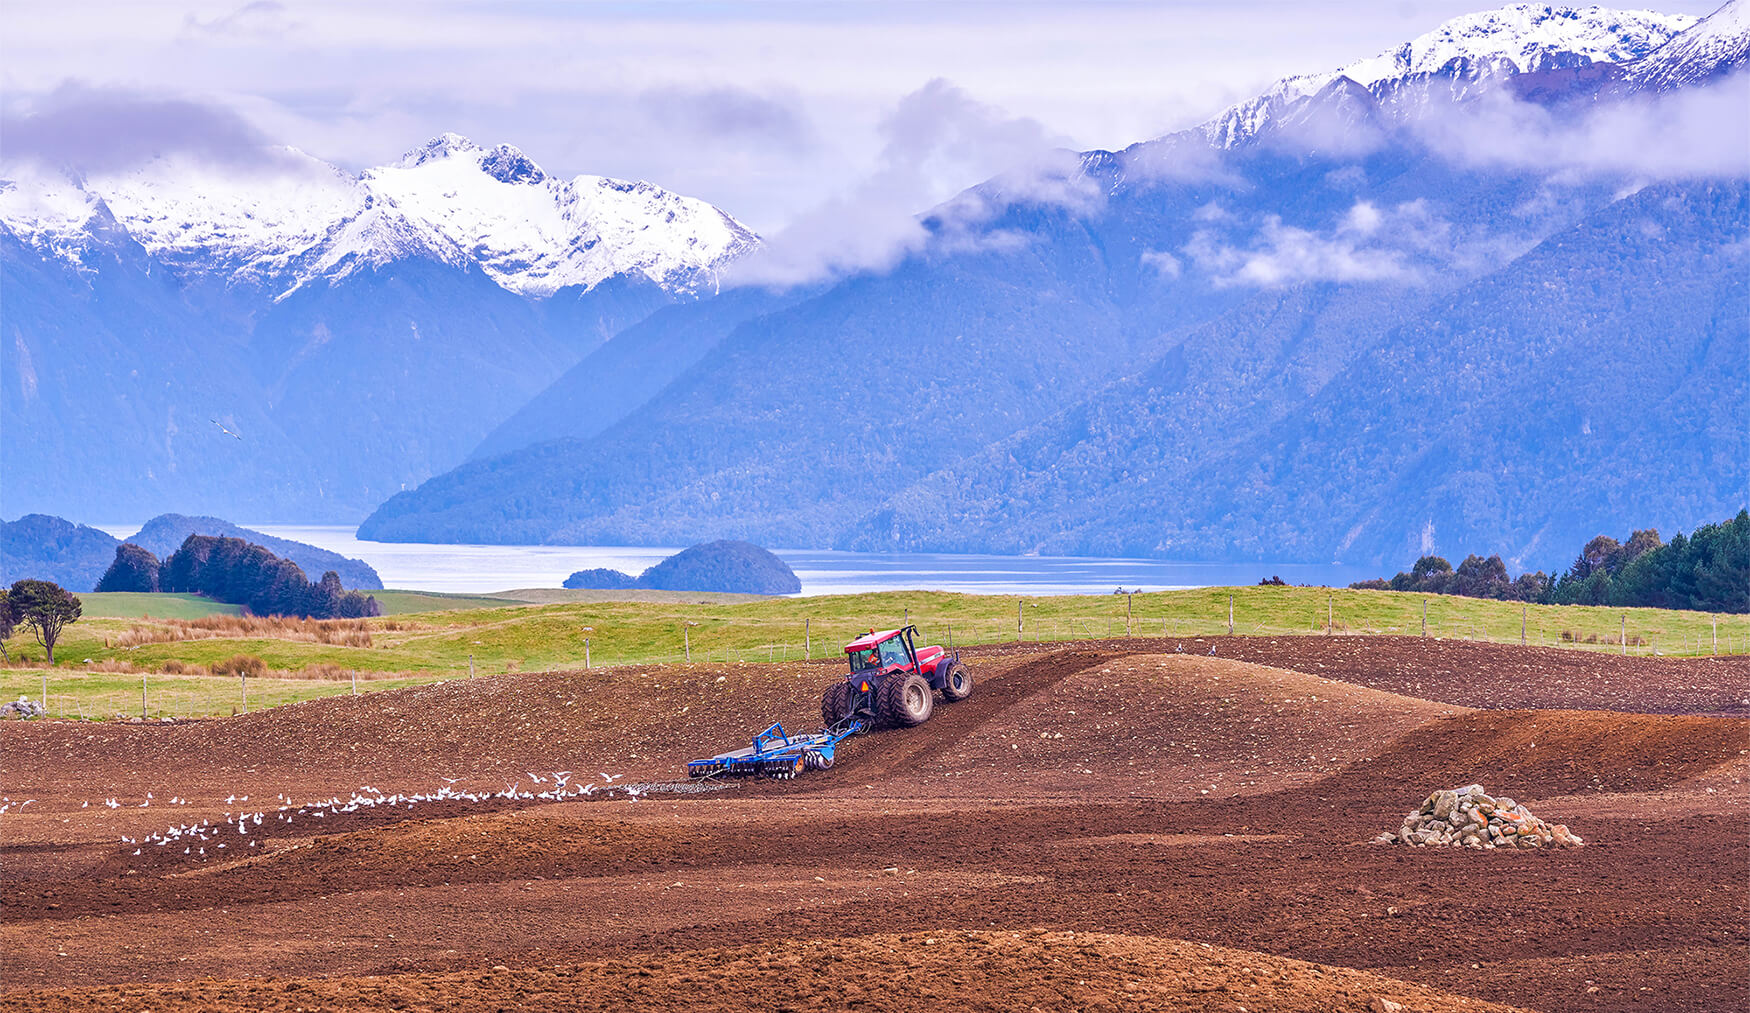 Tractor pulling Grizzly discs to cultivate field with scenic Lake Te Anau and mountains in the background.